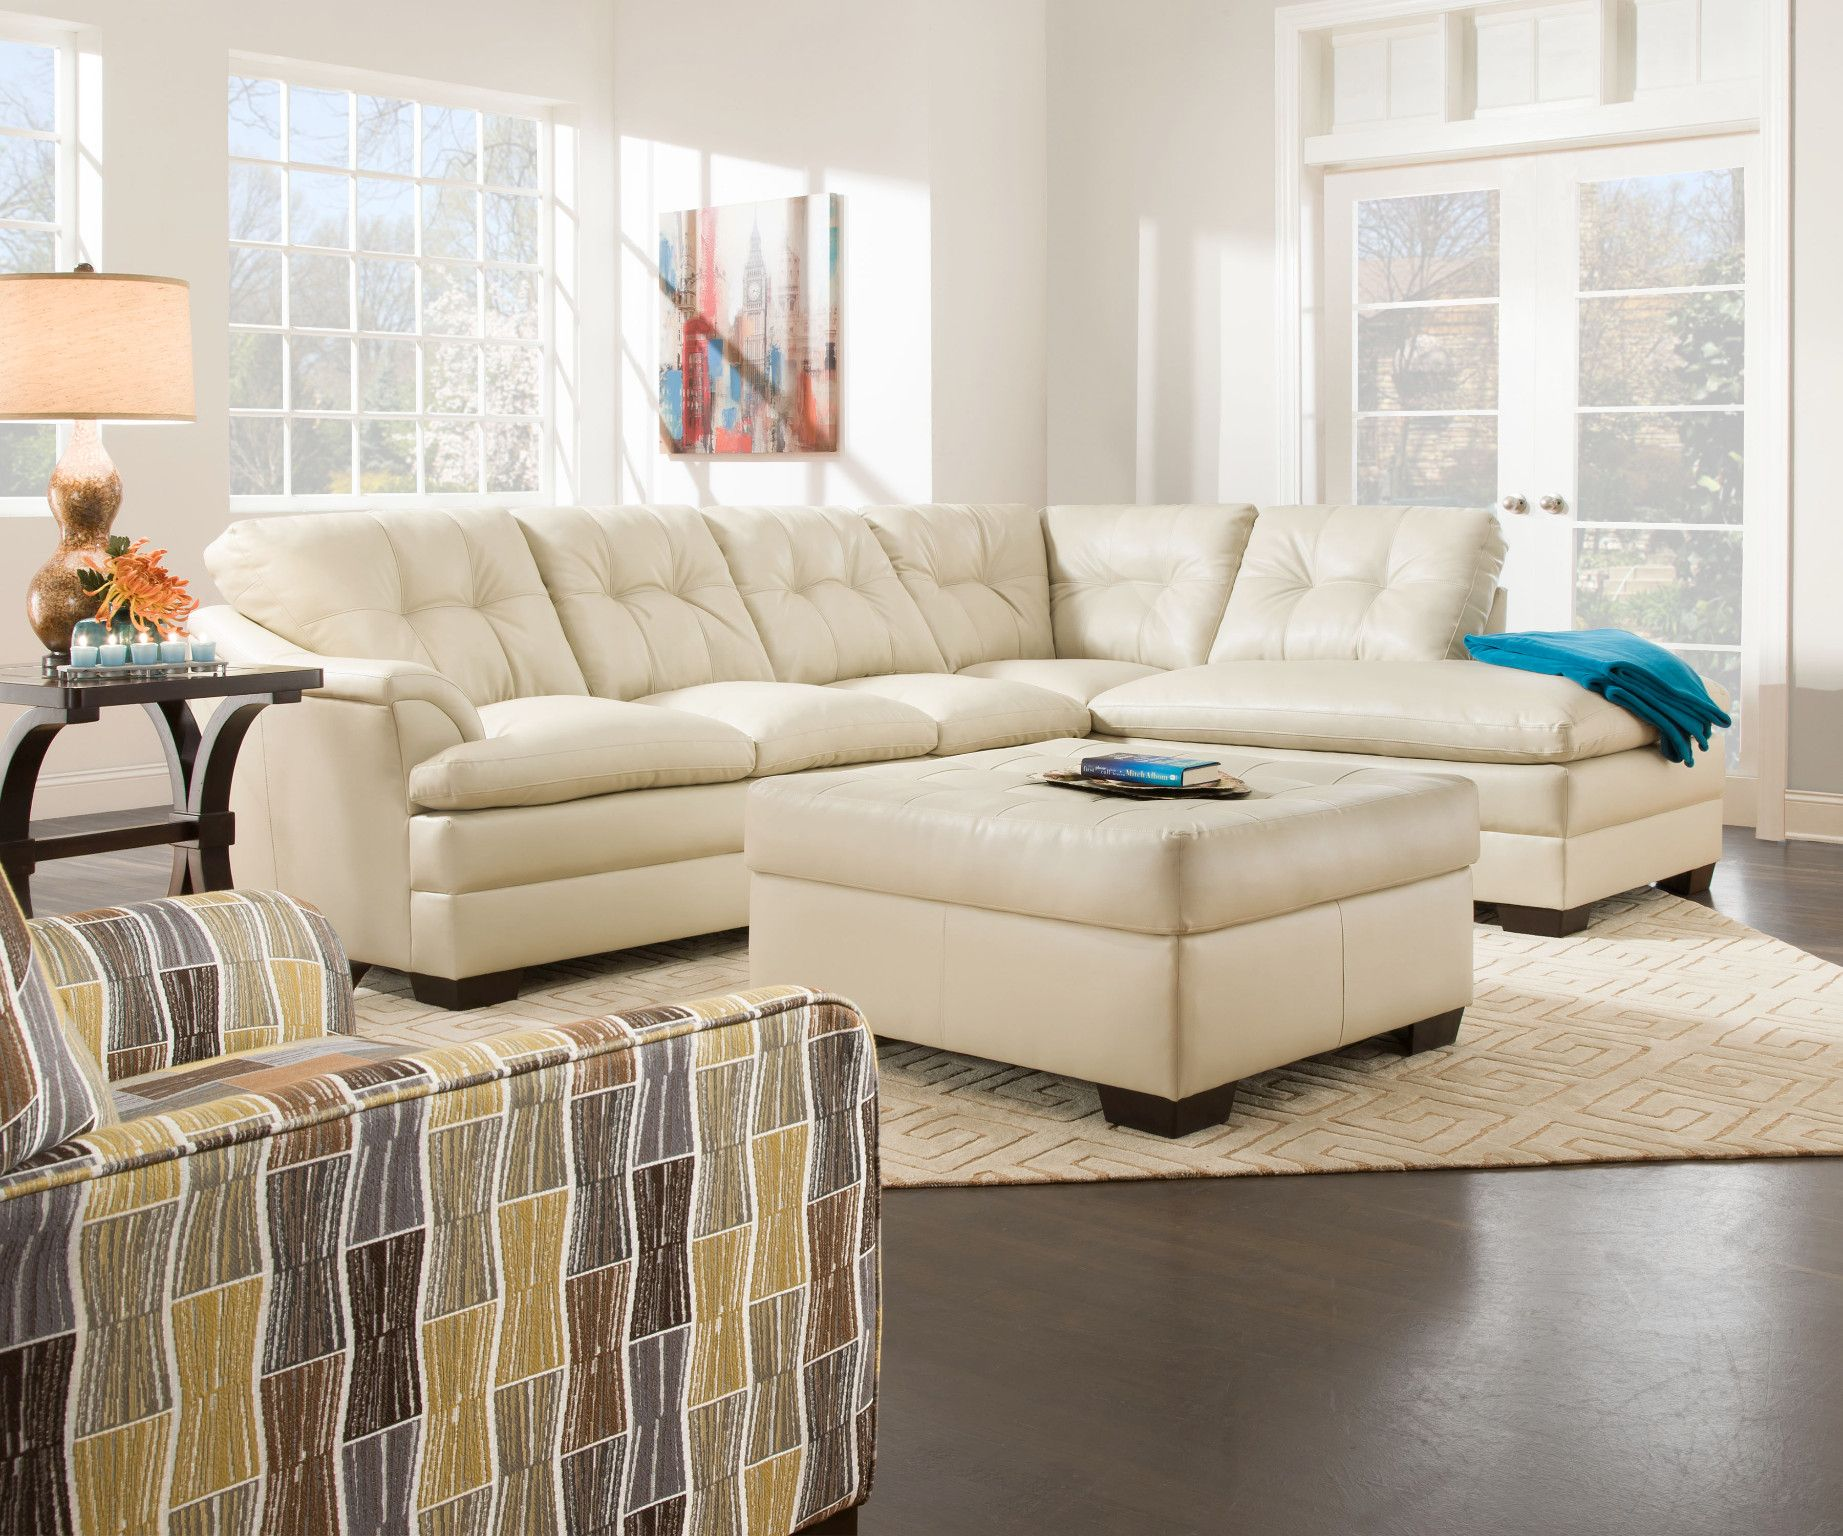 Apollo 2 Piece Sectional Sofa W Chaise Shown In Breathable Bone Bonded Leather Also Available In Grey Sectional Sofa Couch Sectional Sofa Sectional